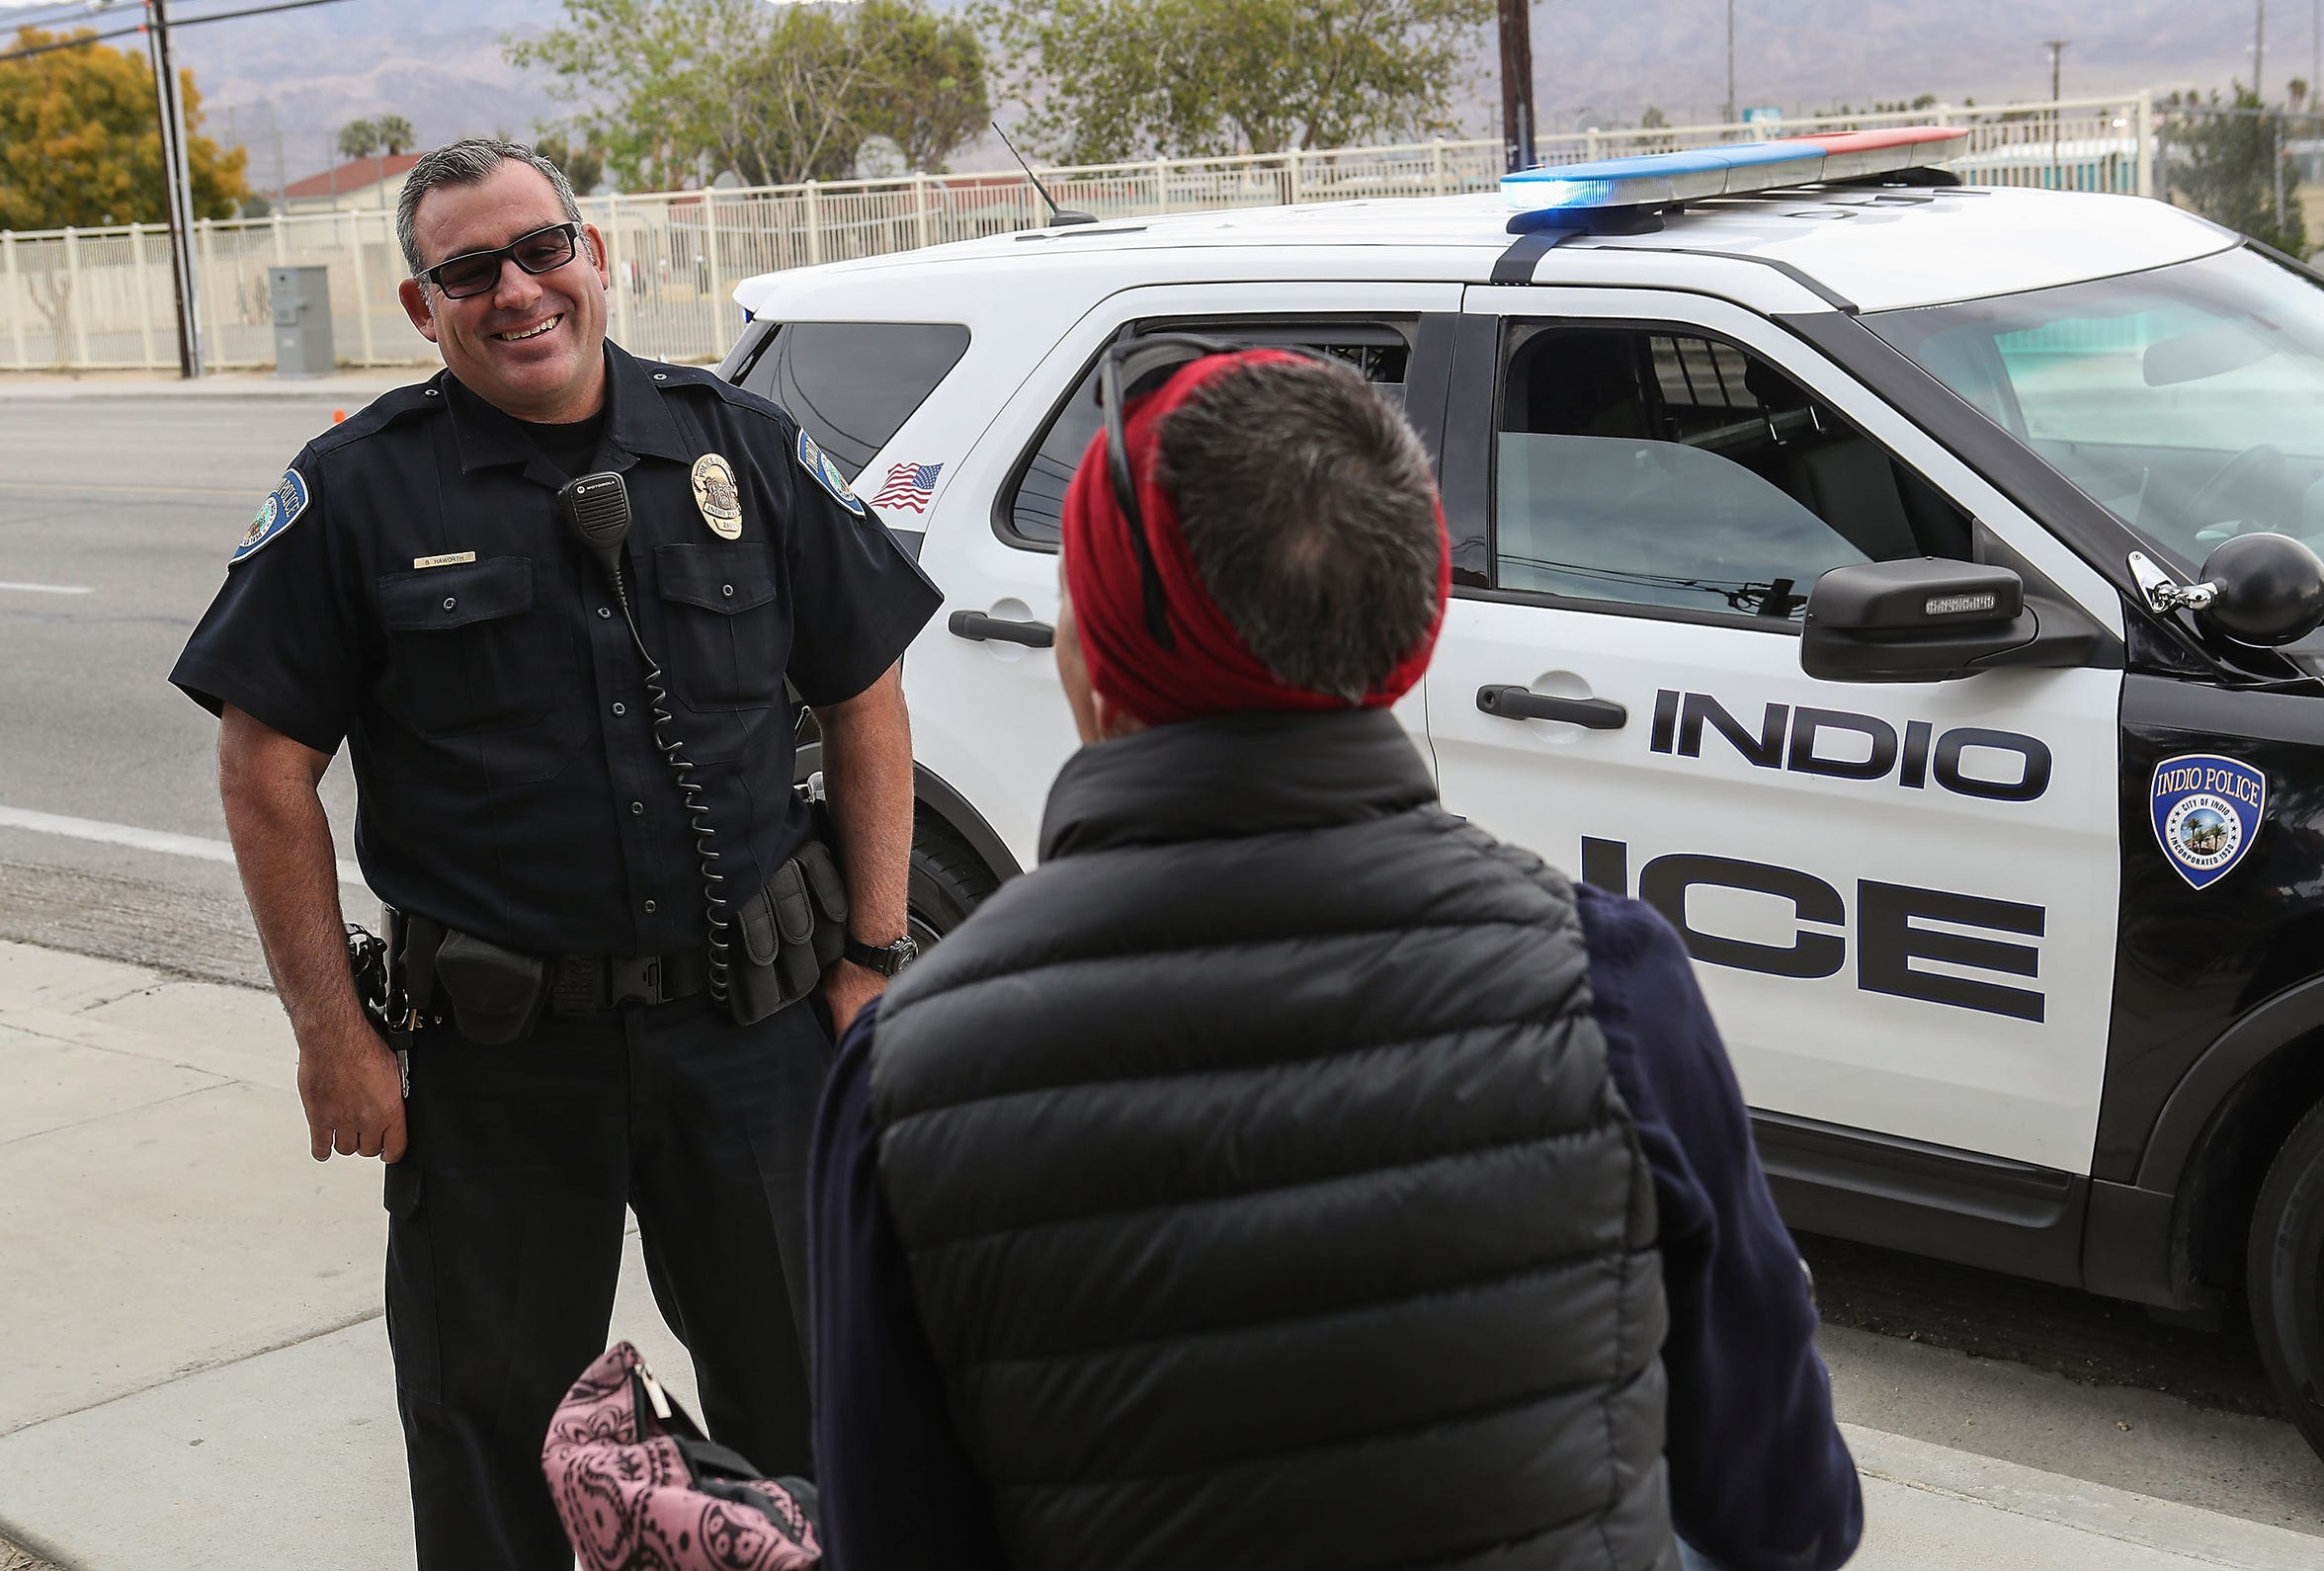 Indio Police Officer Brandon Haworth talks with Stephanie Goodson who had been homeless before finding housing in Indio, December 18, 2019.